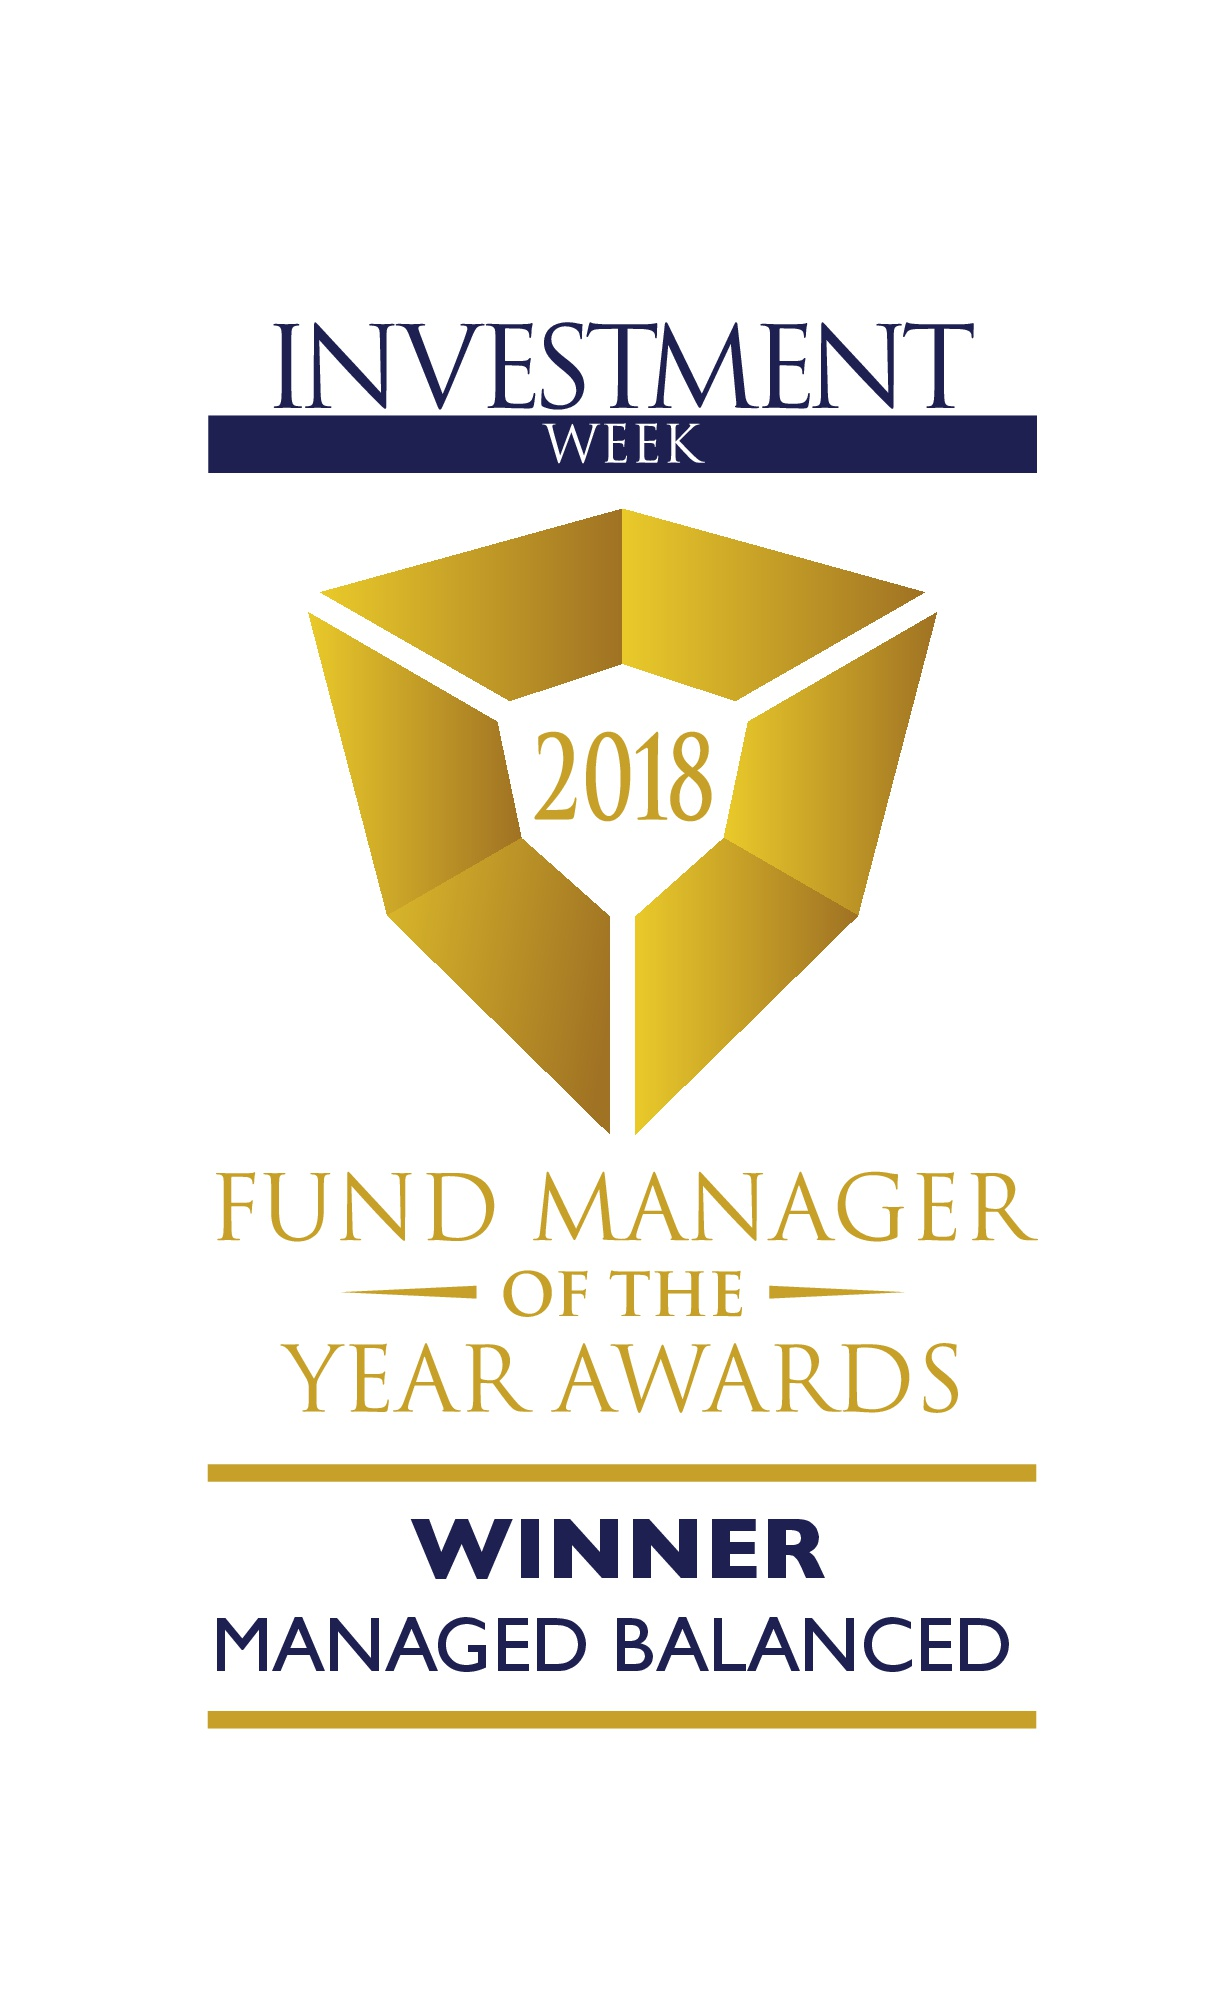 Investment Week Fund Manager of the Year Awards 2018